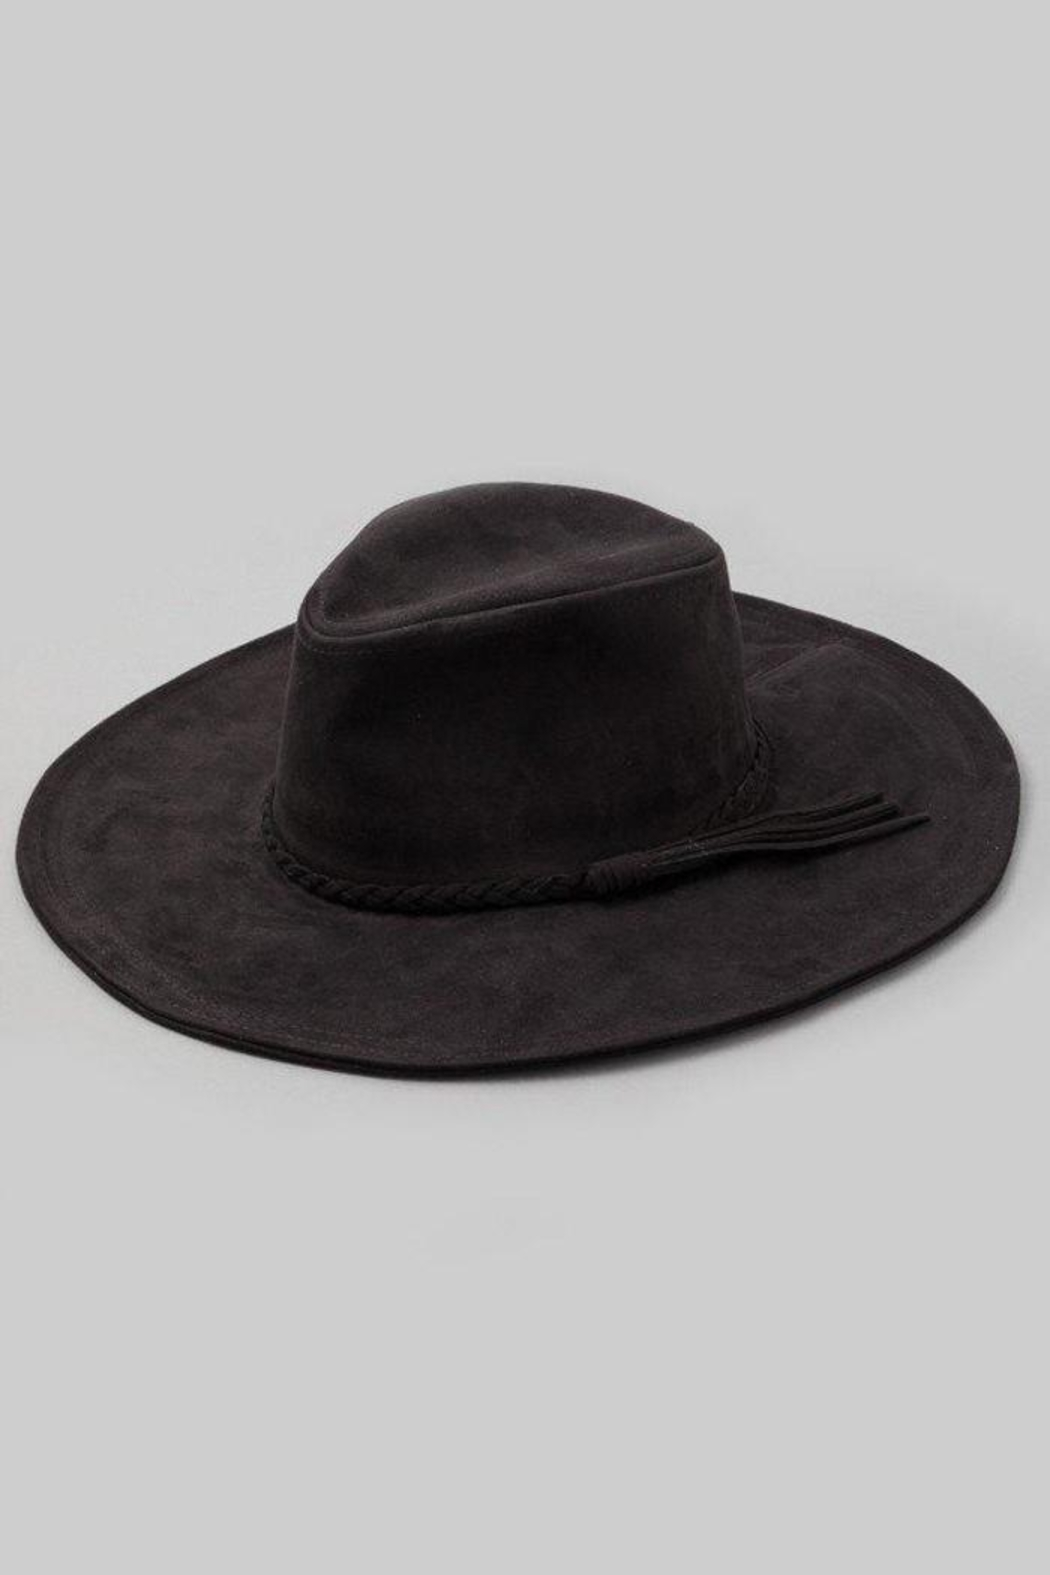 Fame Accessories Joshua Tree (Vegan) Suede Hat In Black - Front Cropped Image